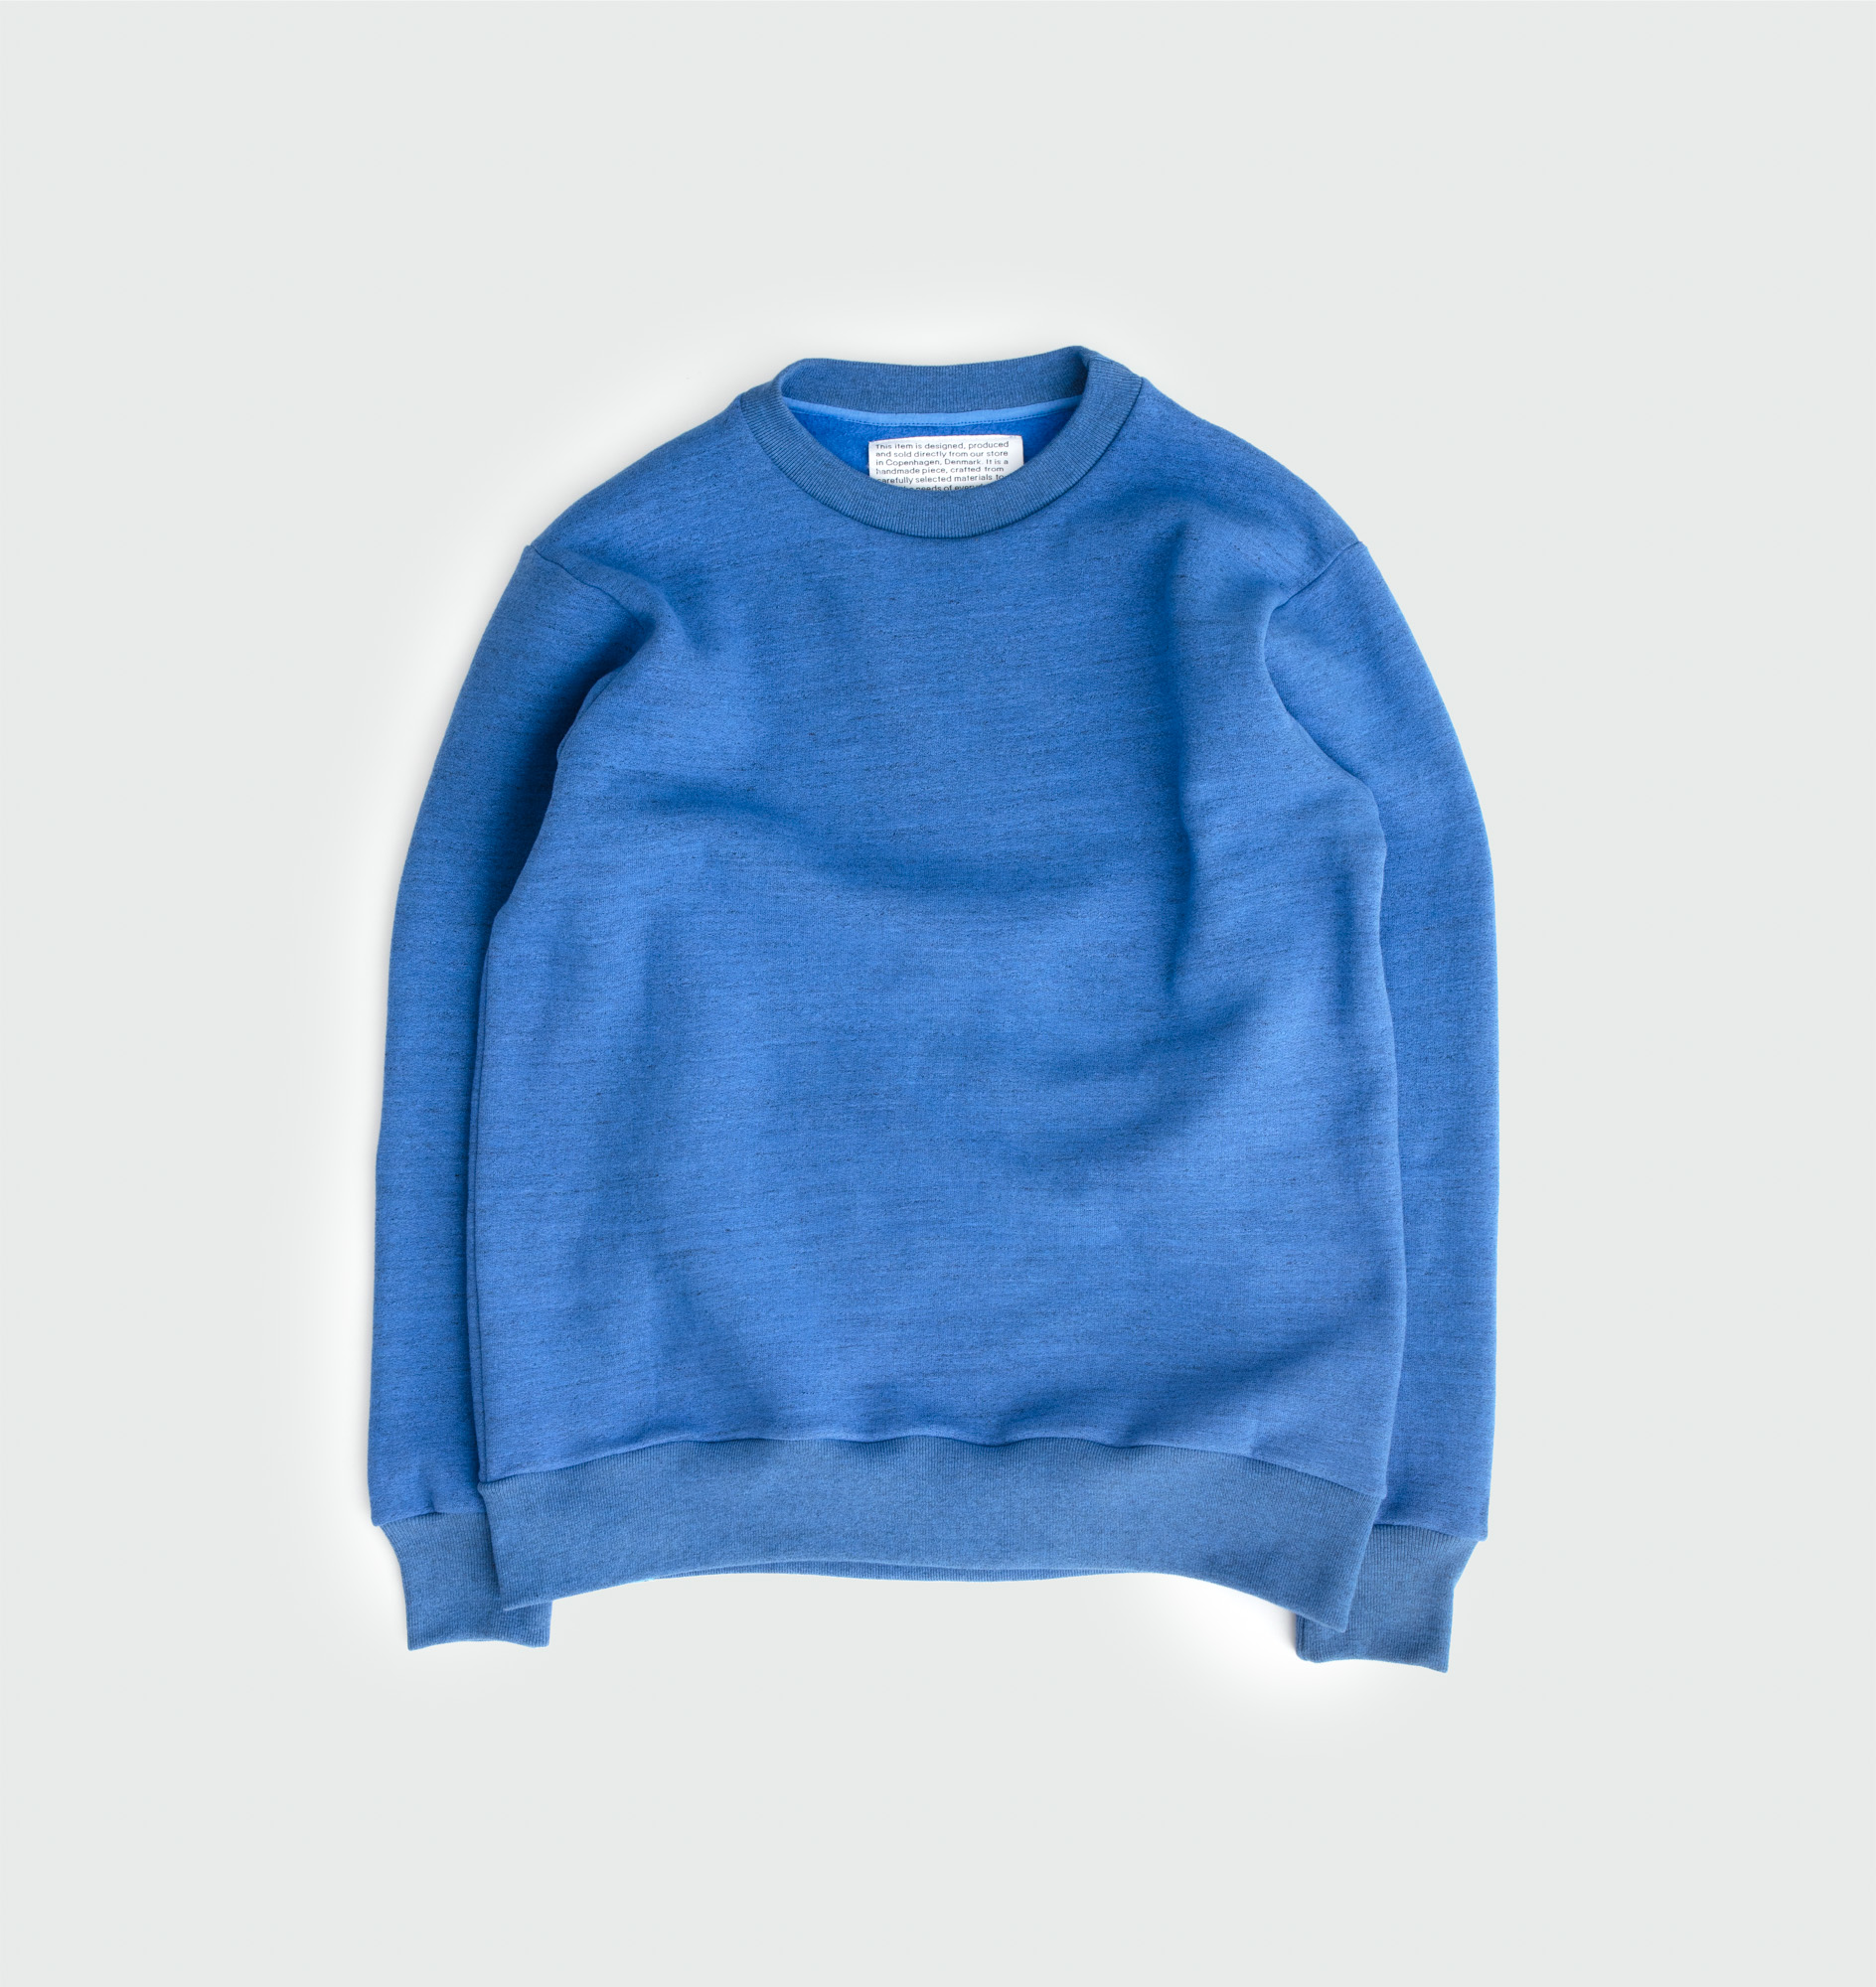 Sweat shirt with Tokisen cotton by Artikel København, produced in Copenhagen